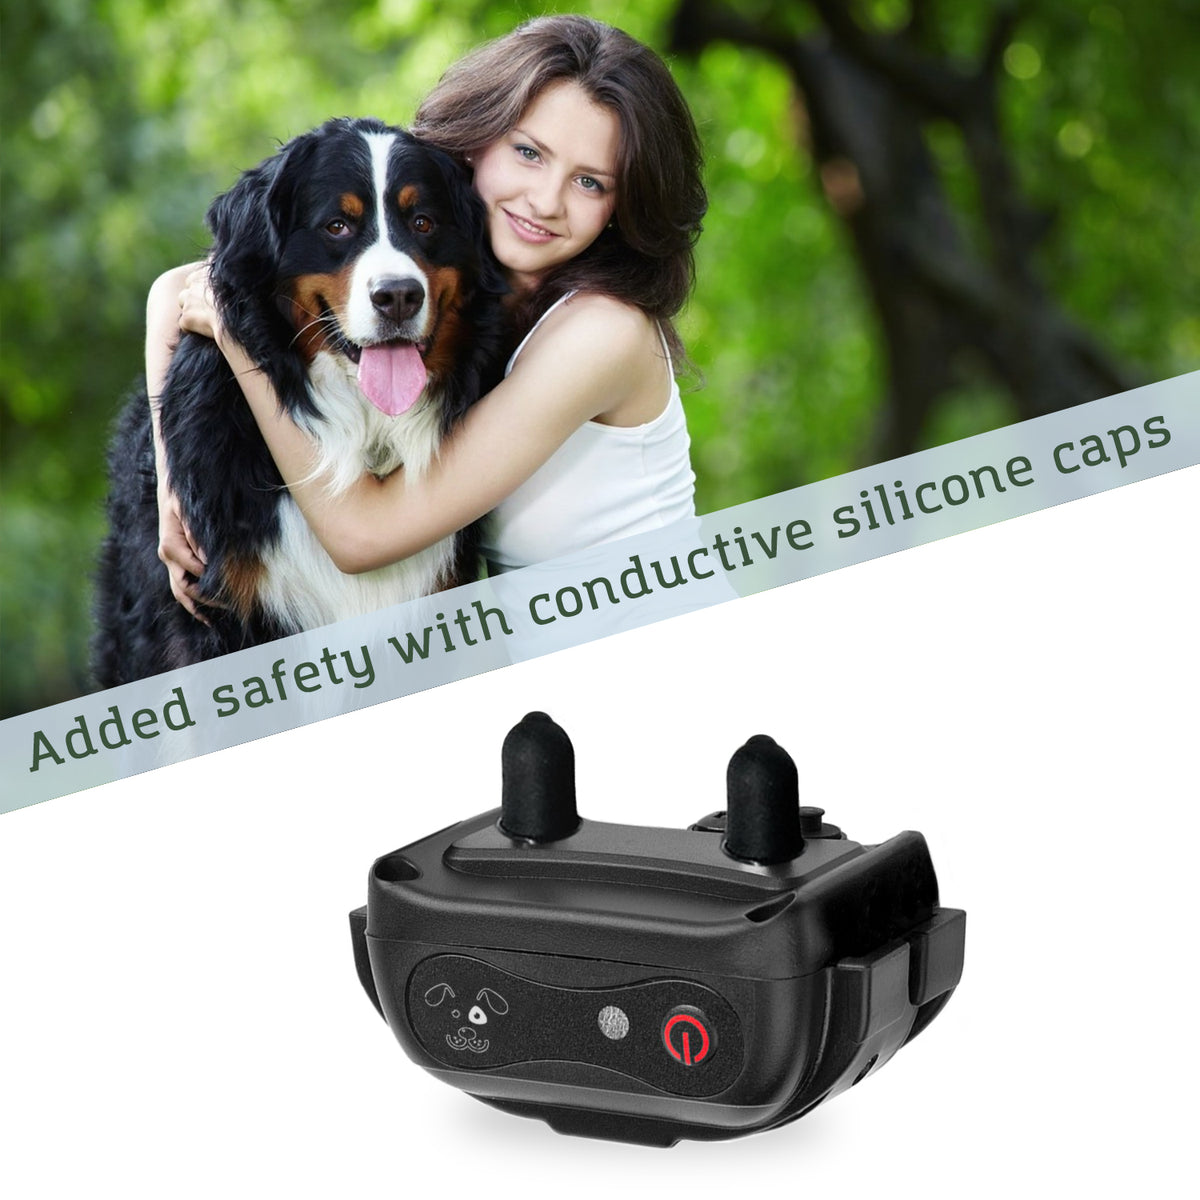 Added safety with conductive silicone caps for PetSpy Xpro X-Pro dog training system